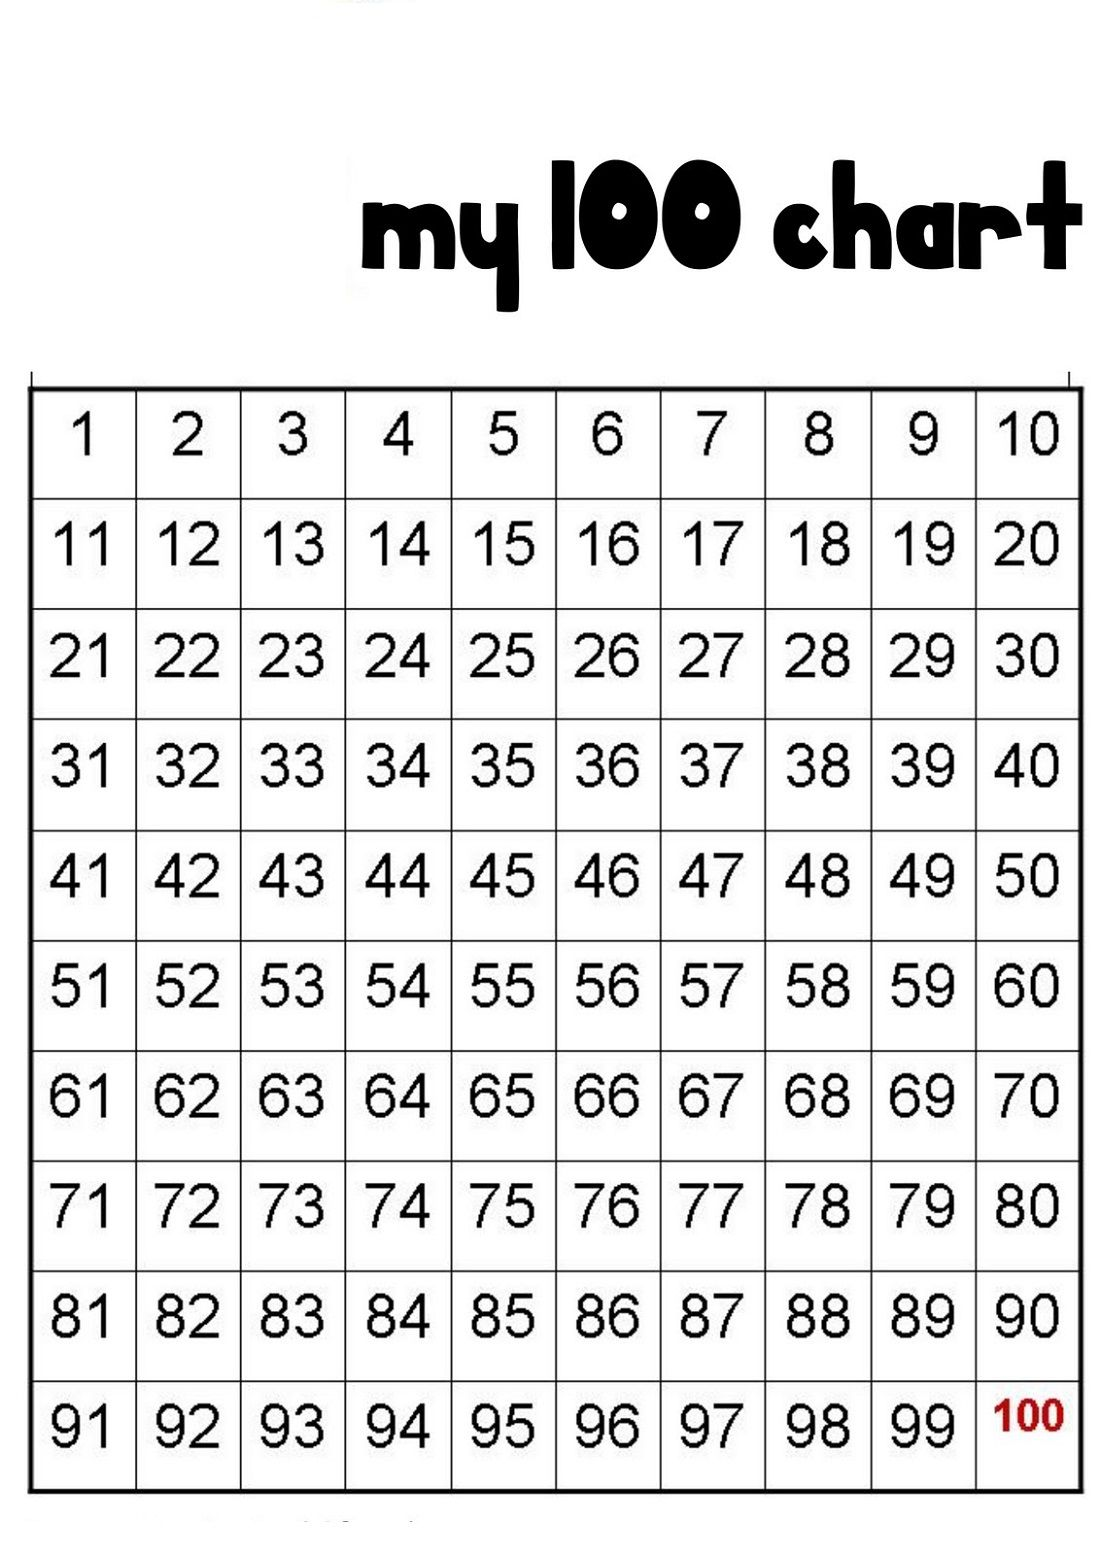 Peaceful image intended for printable number chart